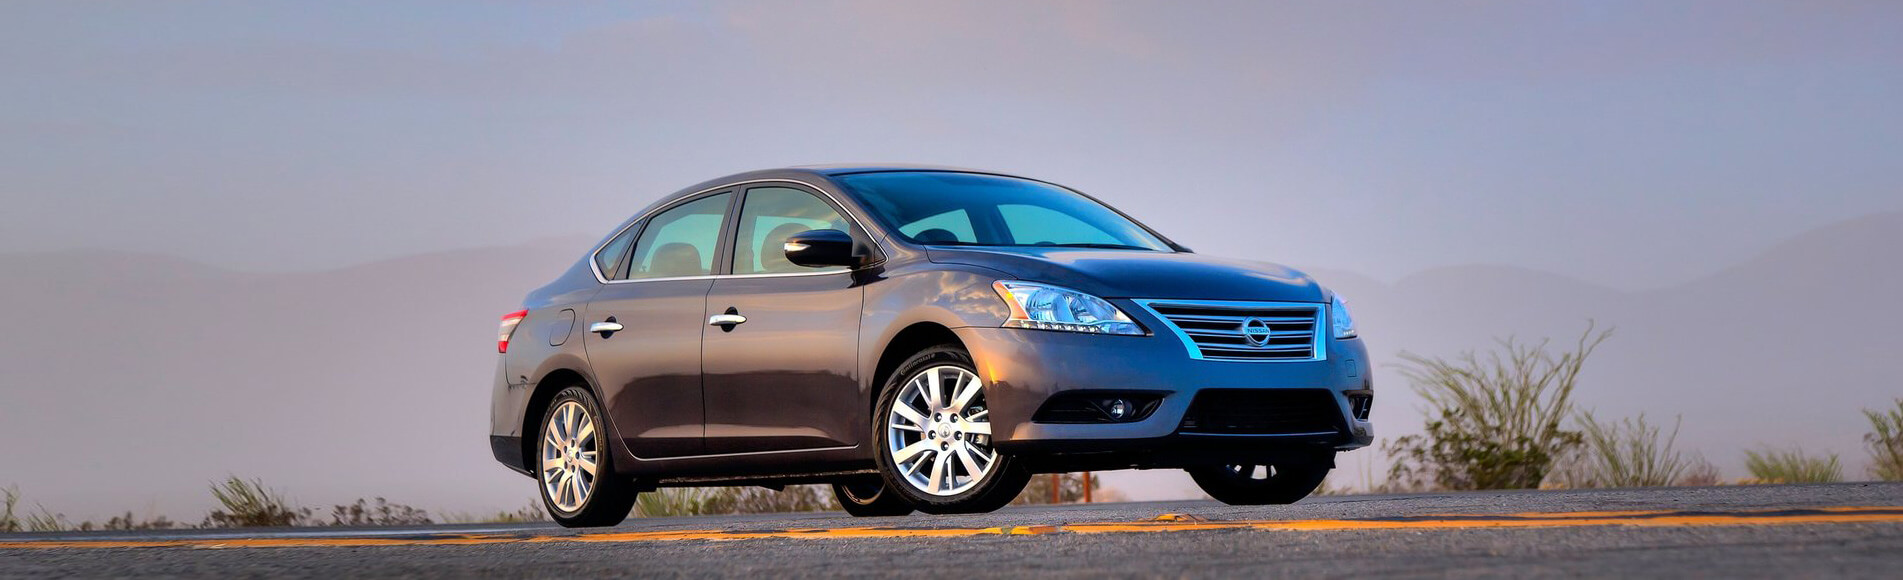 Used Cars Gilbertsville-Cars For Sale PA | Kulp Car Sales